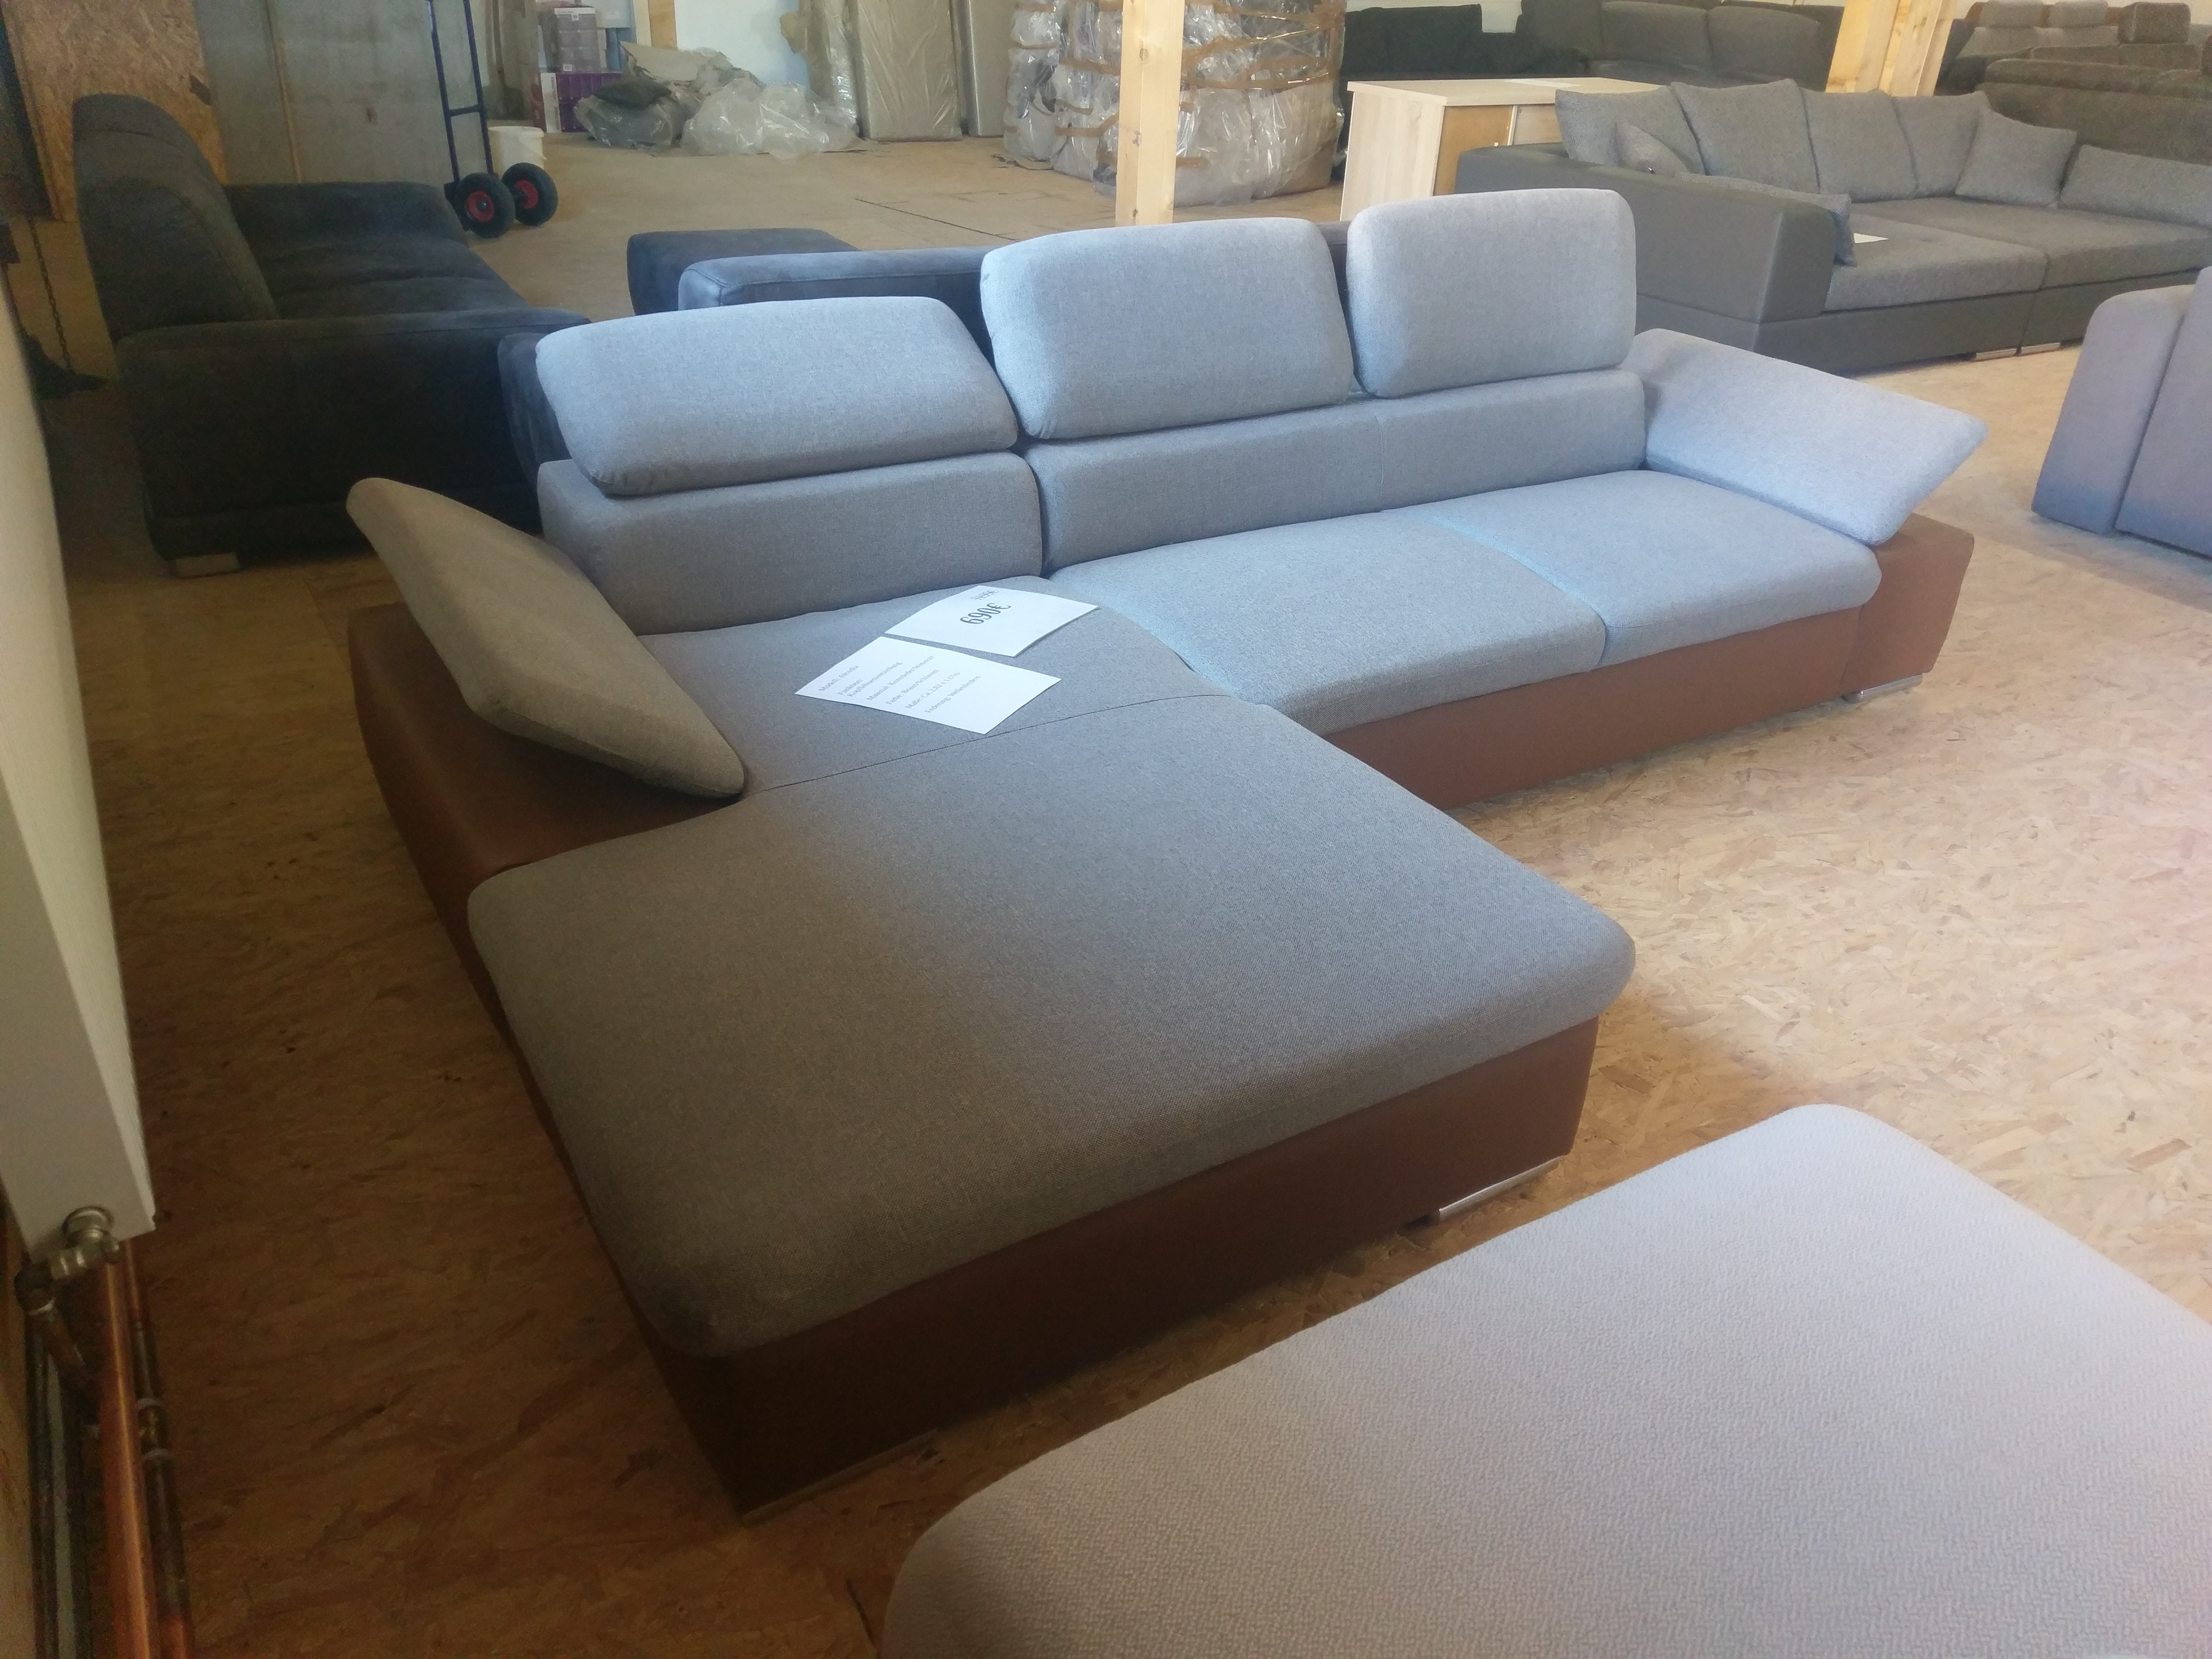 Couch Xl Xl Sofas Ecksofa Polsterecke Couch Kopffunktion Sofa